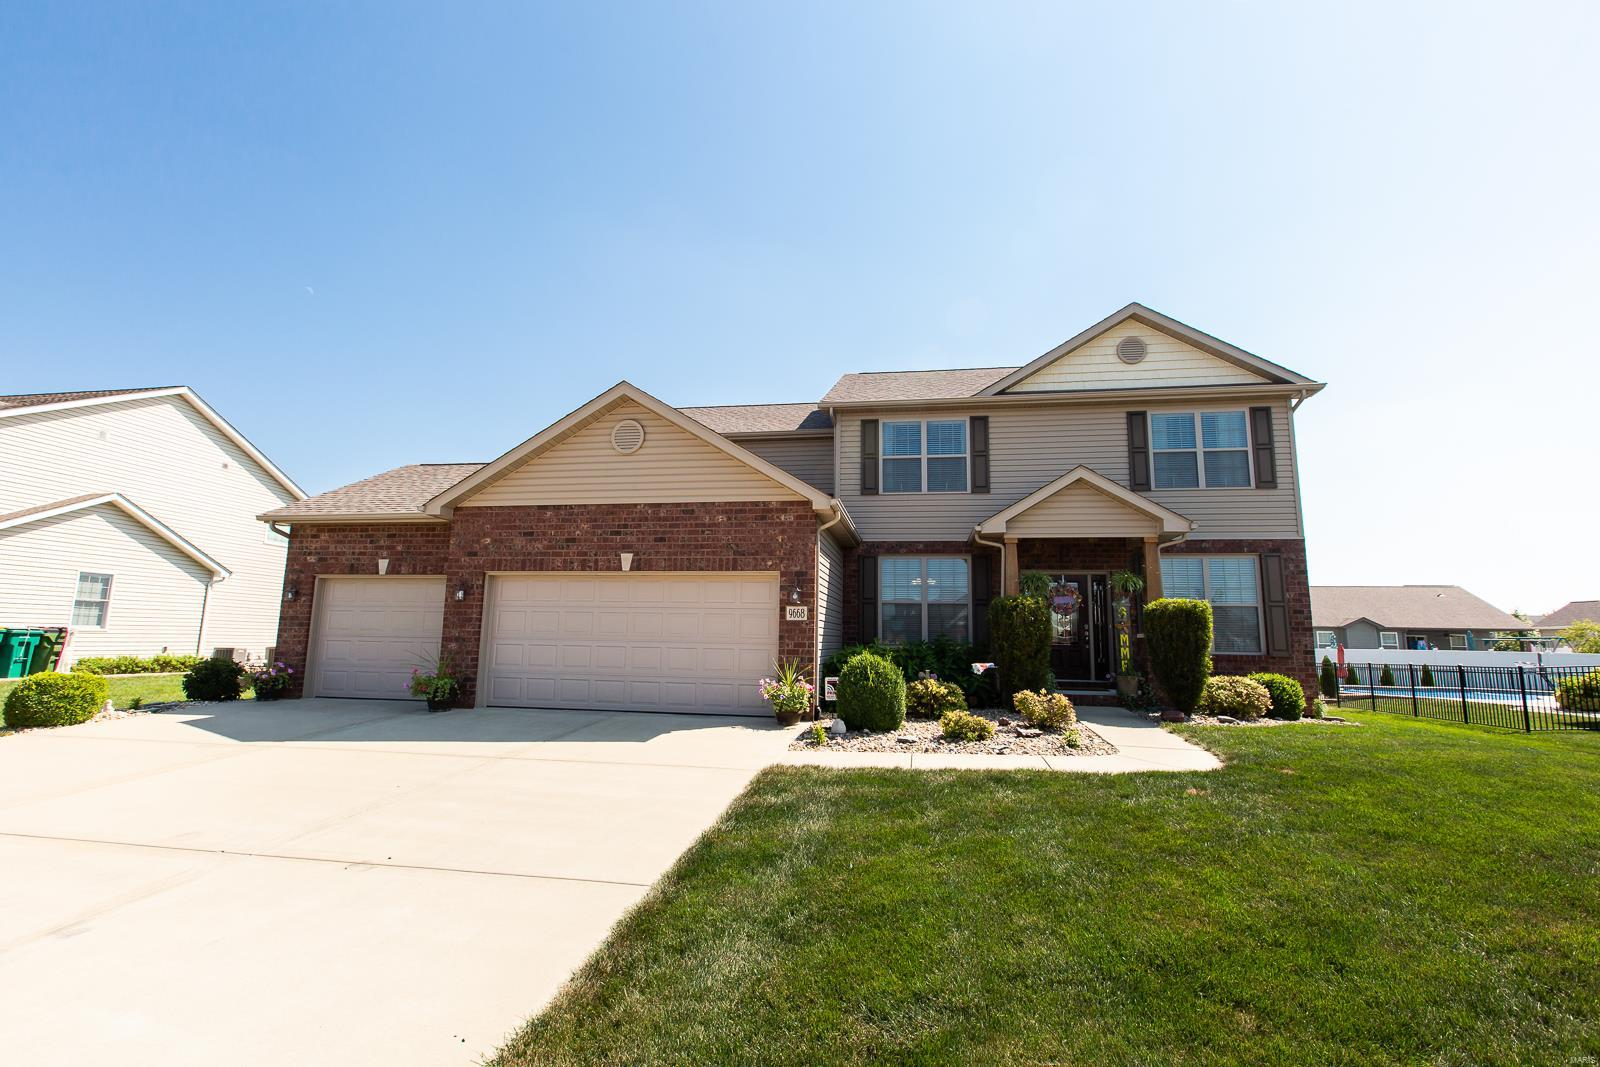 9668 Weatherby Street Property Photo - Mascoutah, IL real estate listing